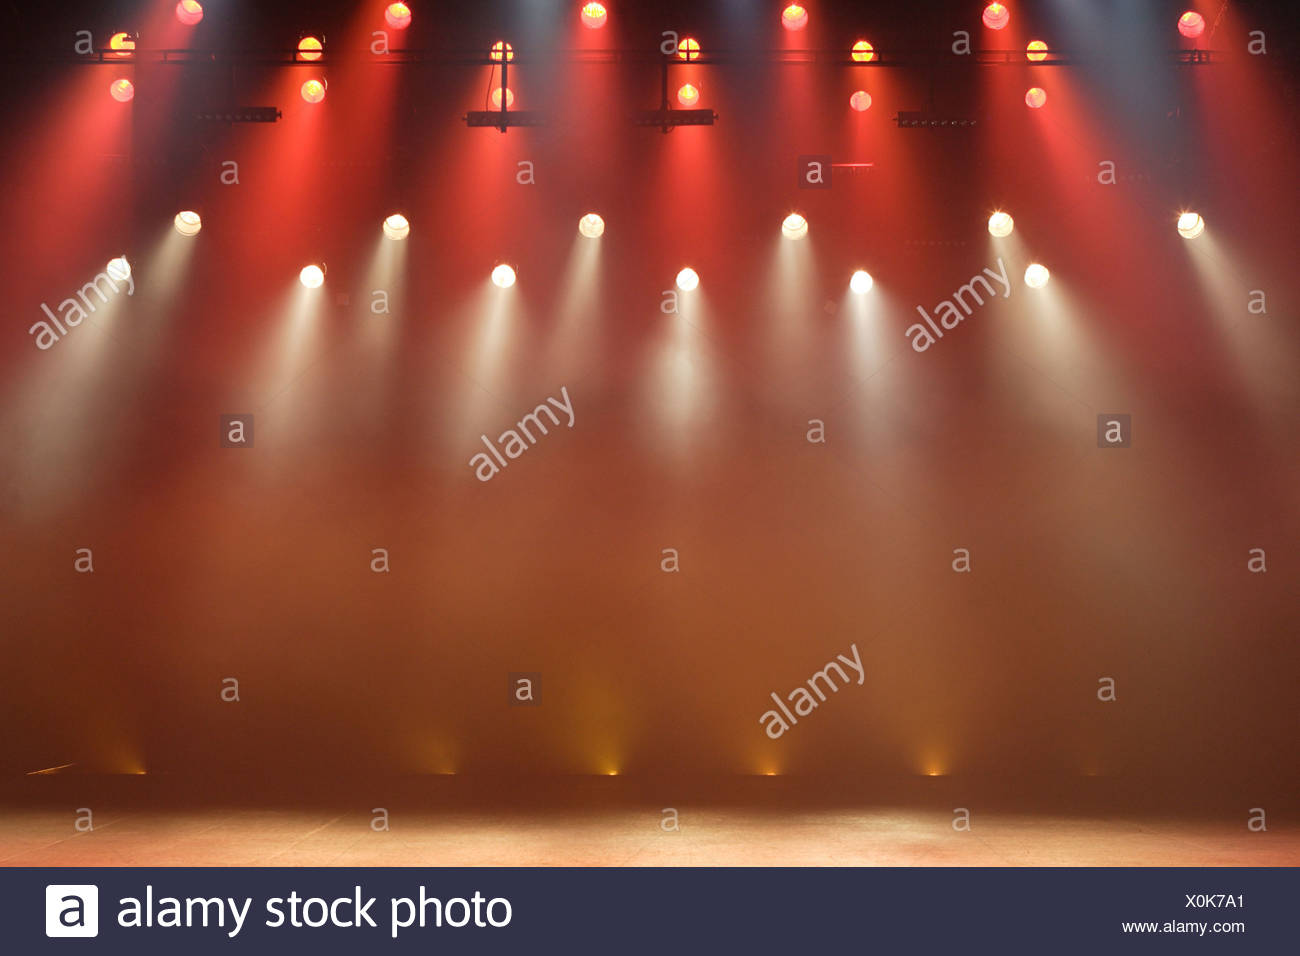 https www alamy com stage lighting effects image275788745 html